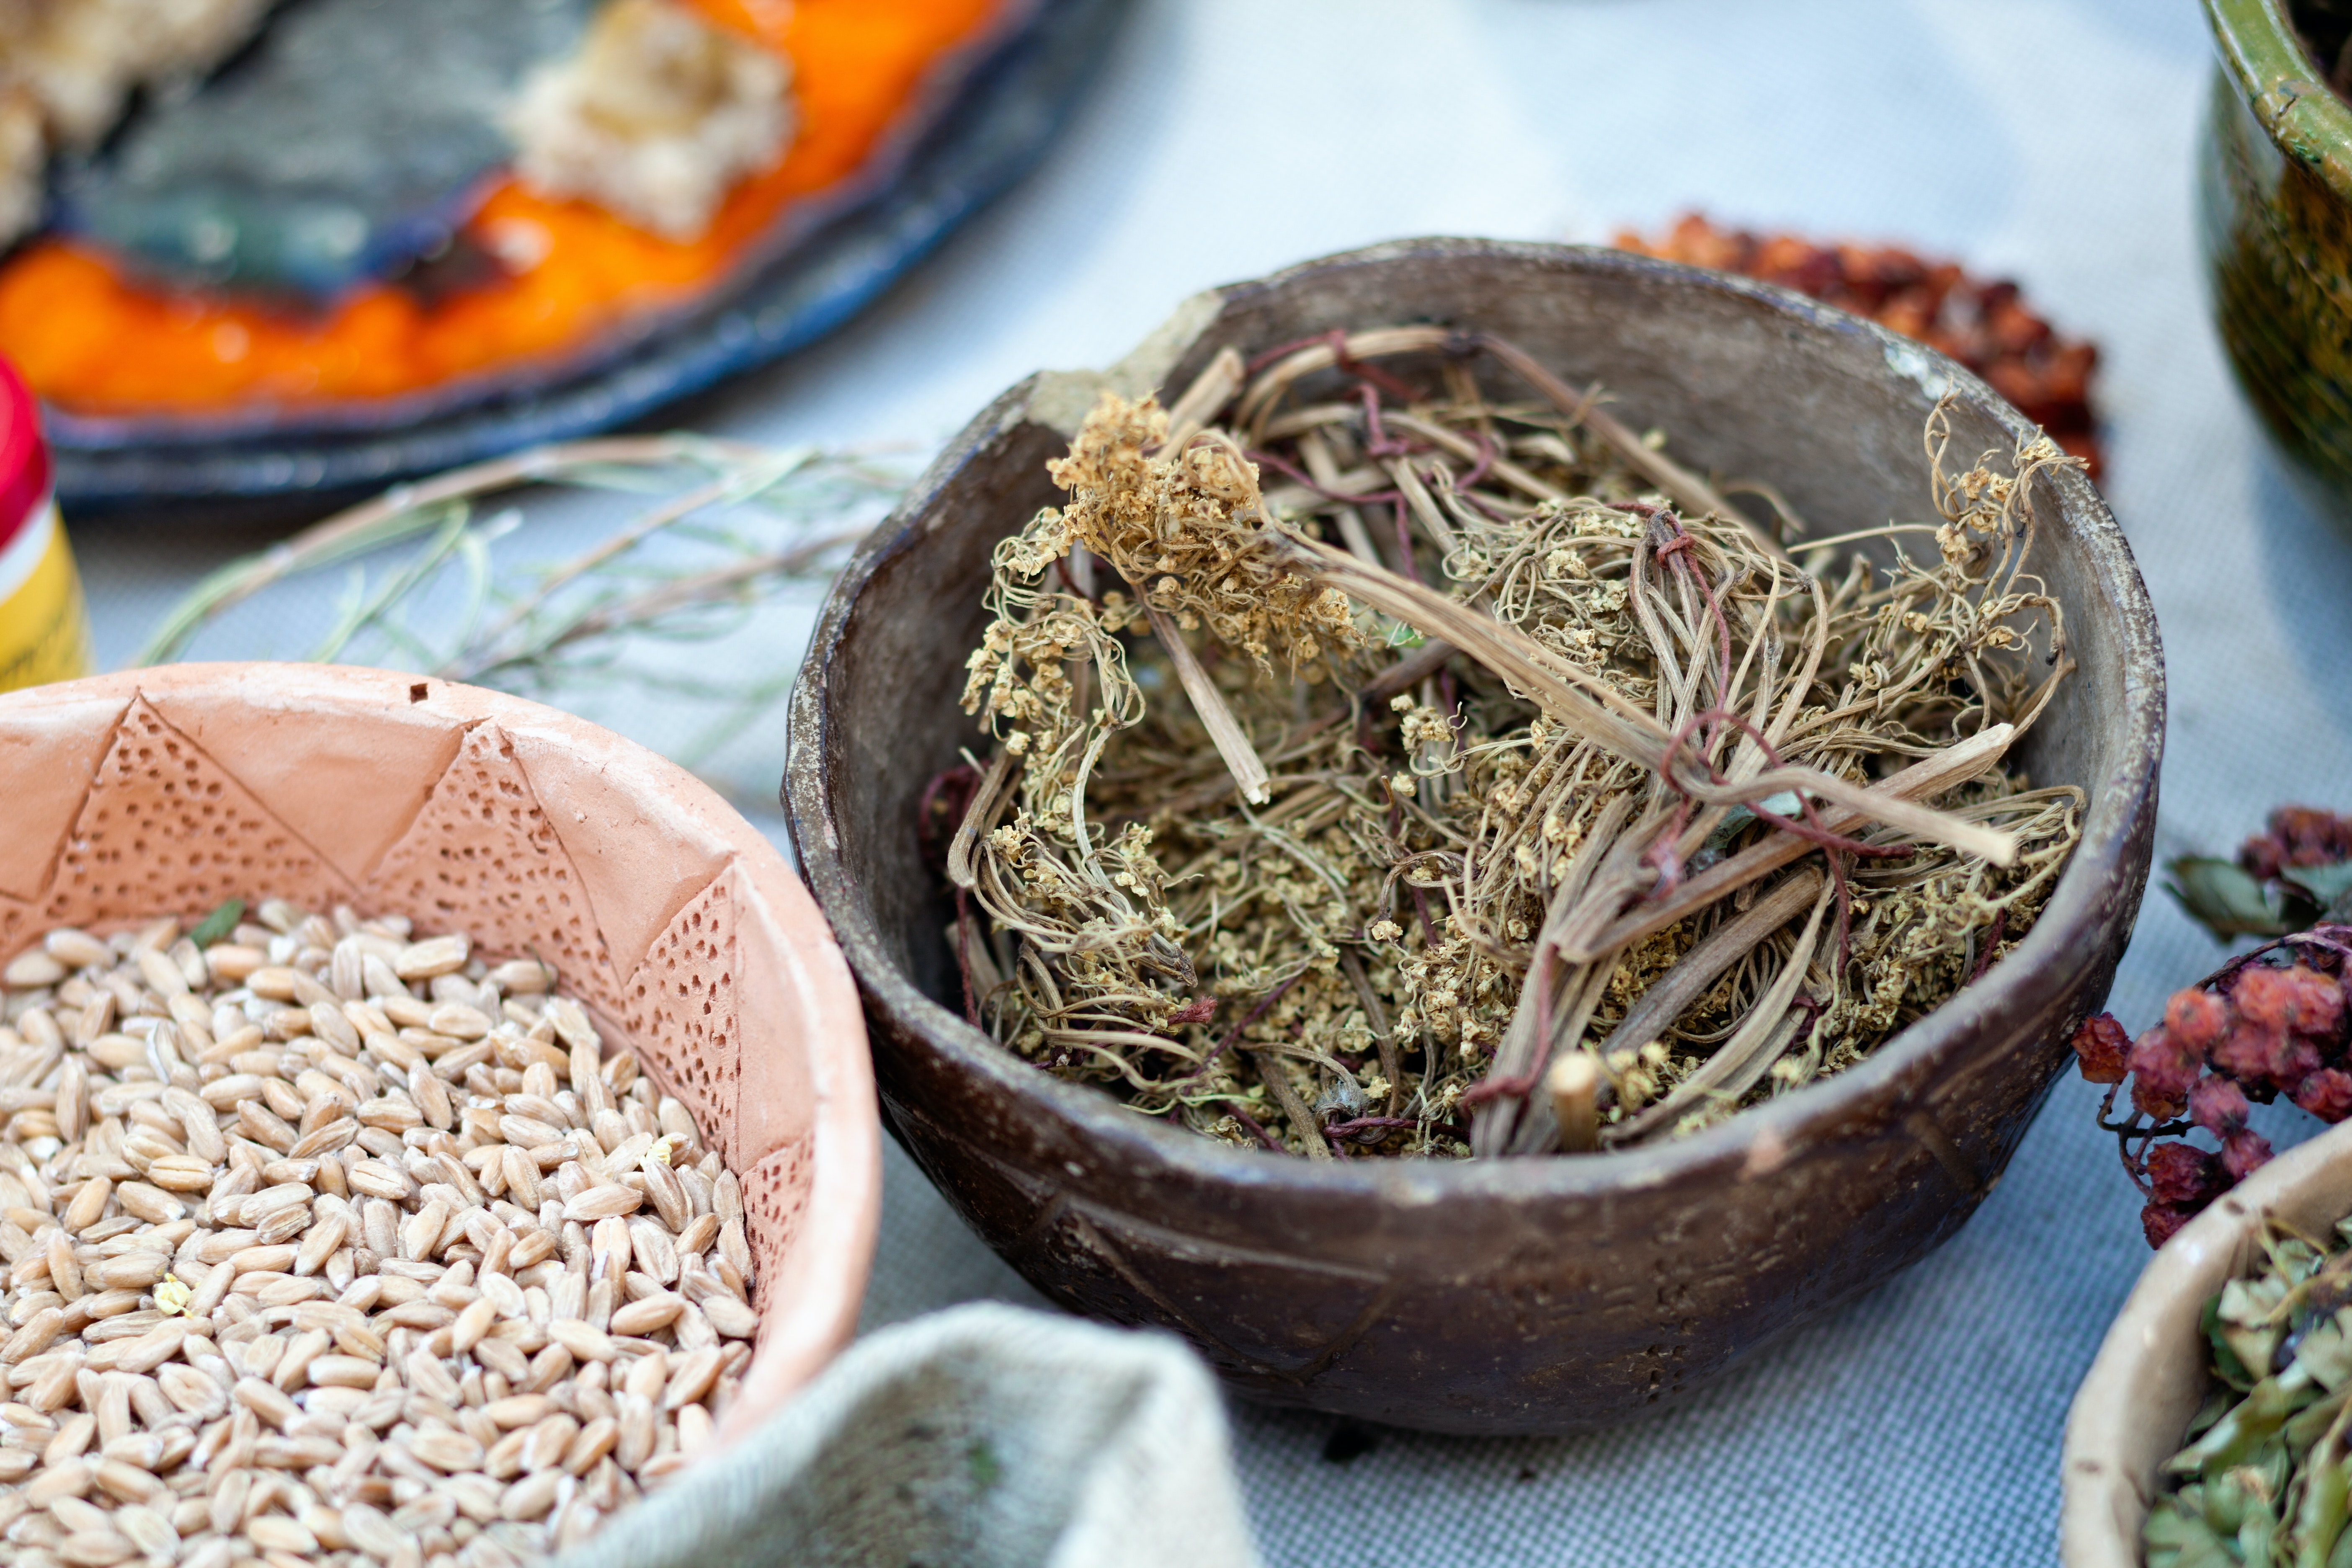 Why alternative medicine should be integrated into conventional health care